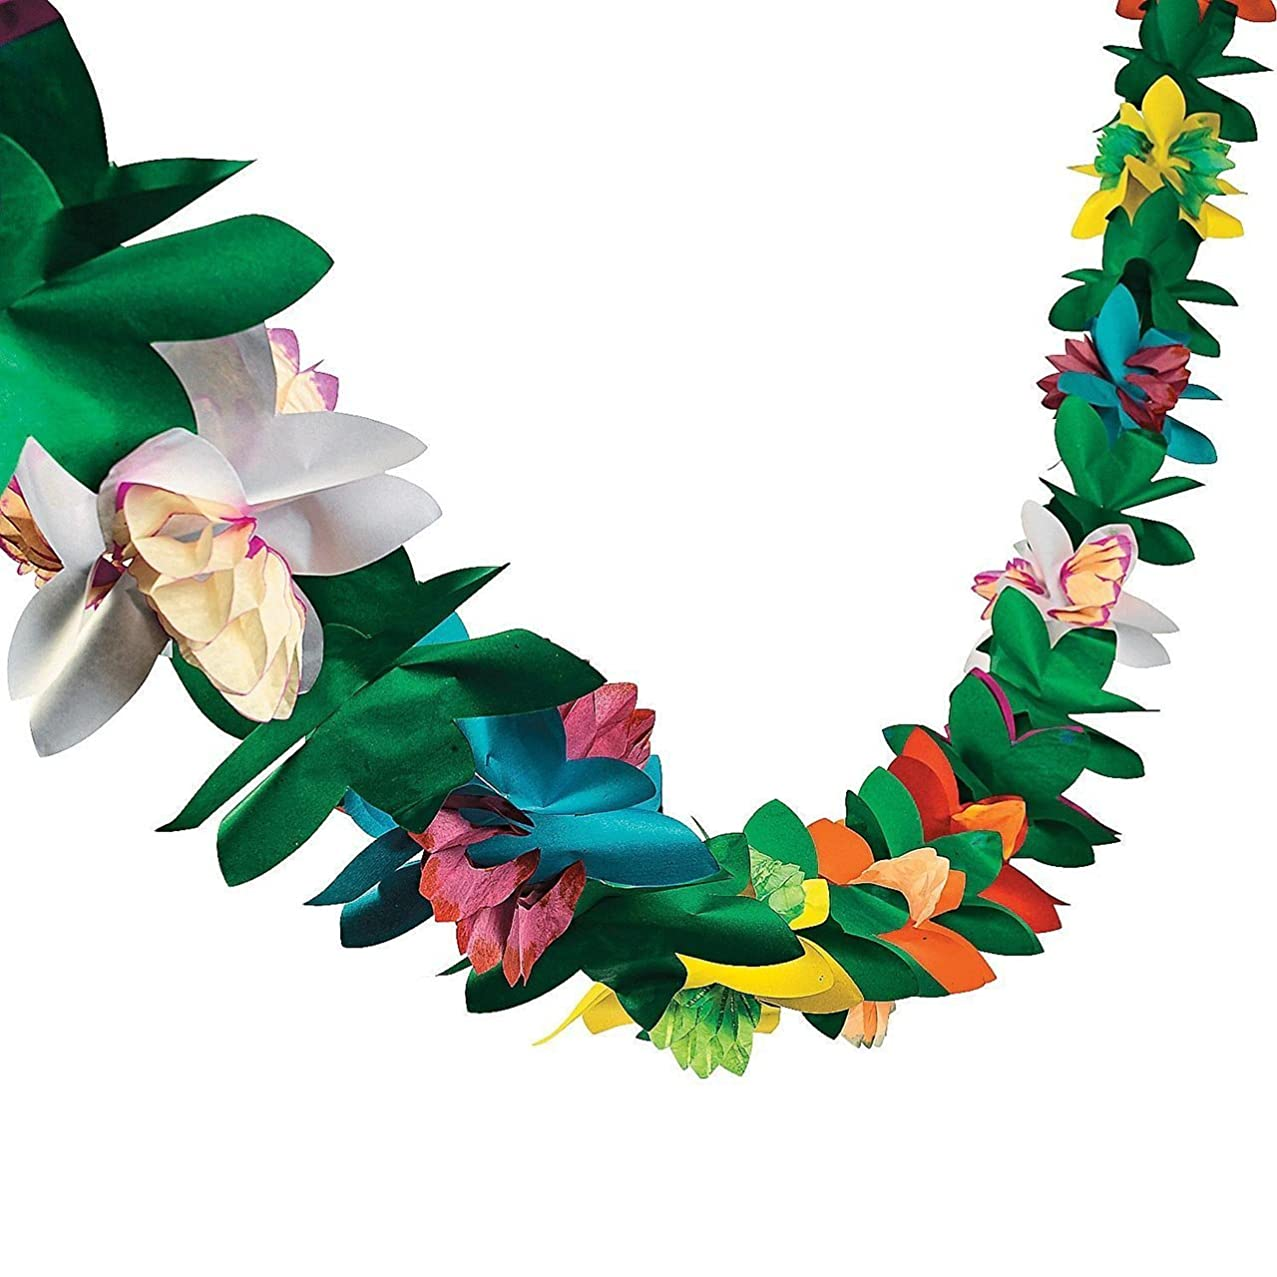 Hawaii Paper Flower Banner, Flower Party Decorations Banner, 9 Feet Tropical Garland for Hawaiian Luau Birthdays Event Supplies - 2 PACK